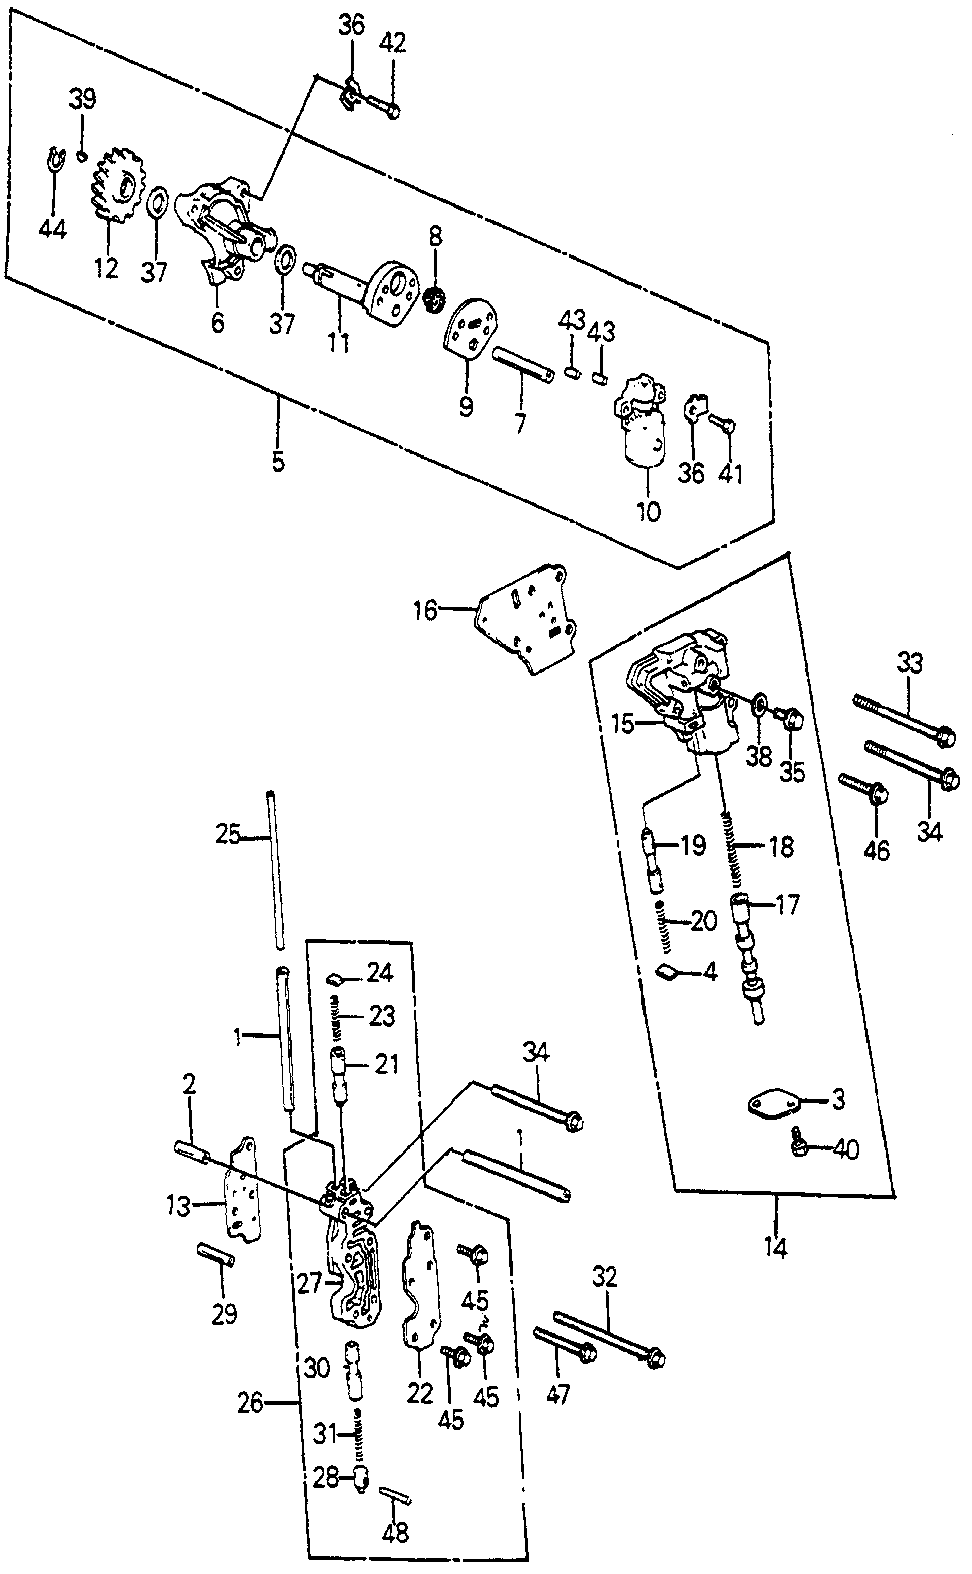 27643-PC9-950 - COVER, CLUTCH PRESSURE CONTROLVALVE